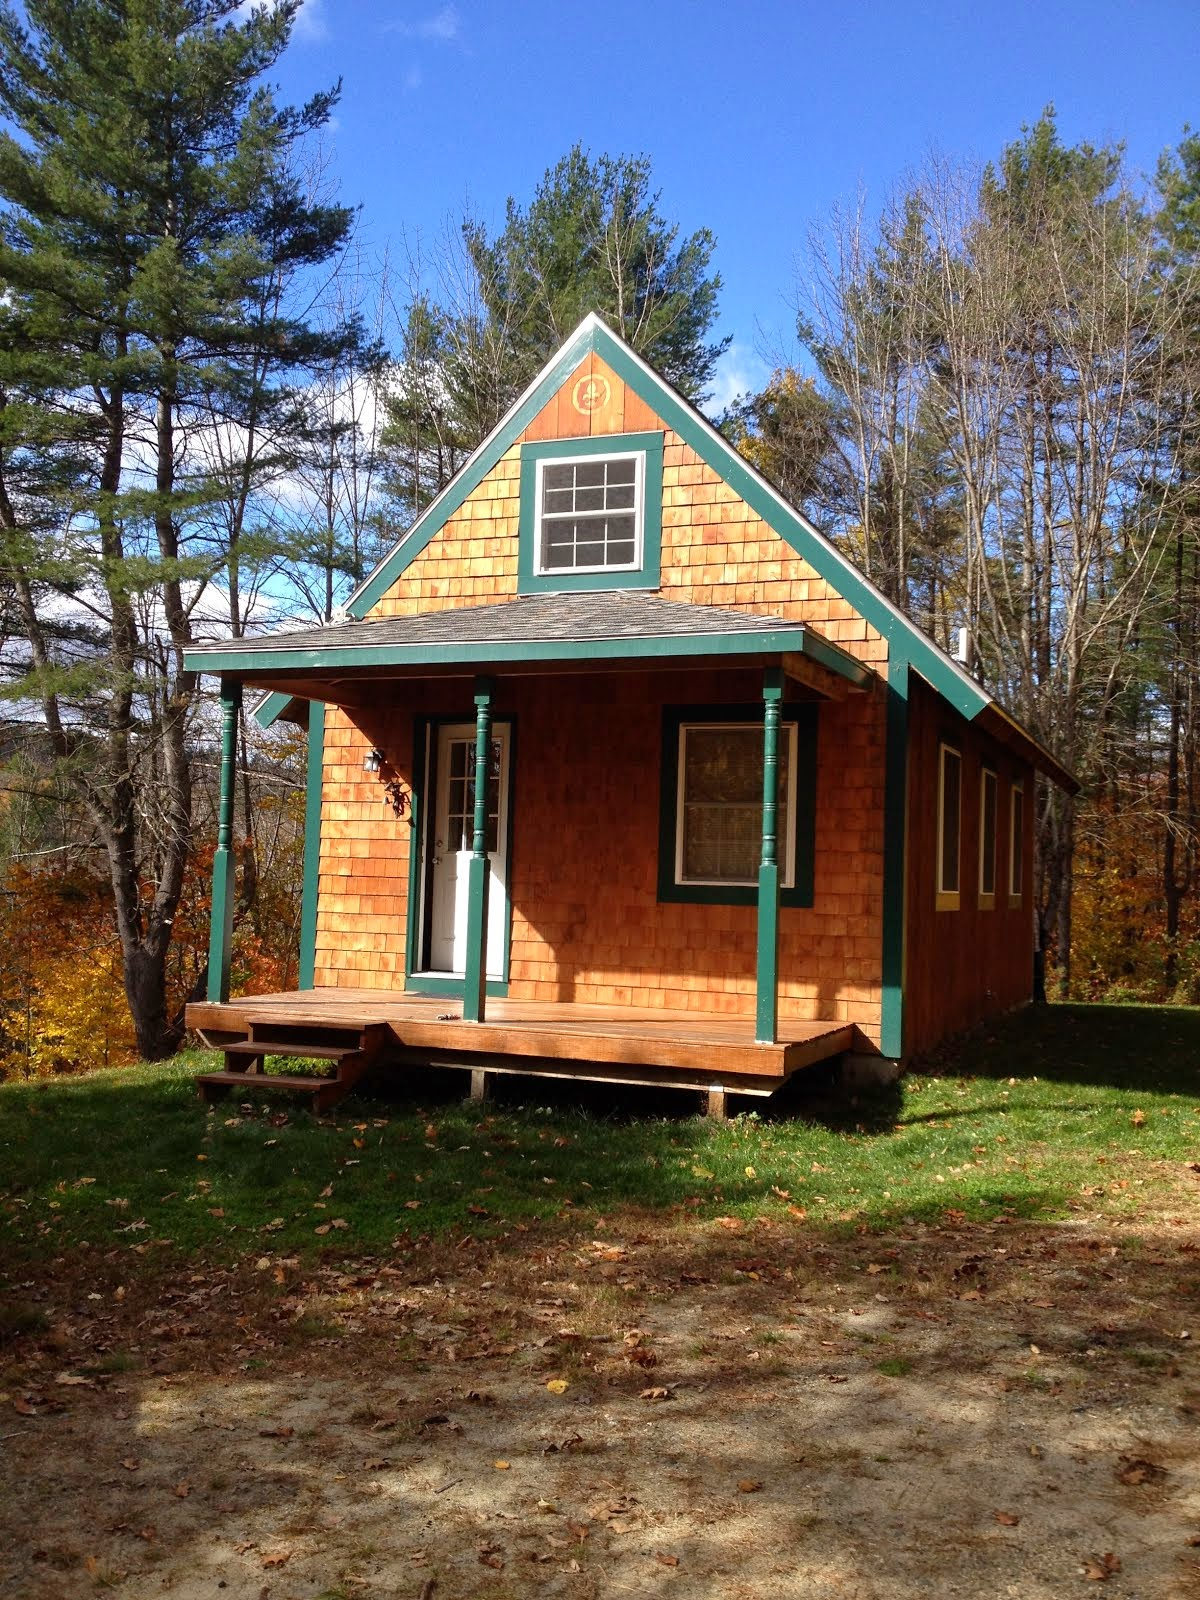 The New England Cabin Project I Predict A Gypsy Caravan